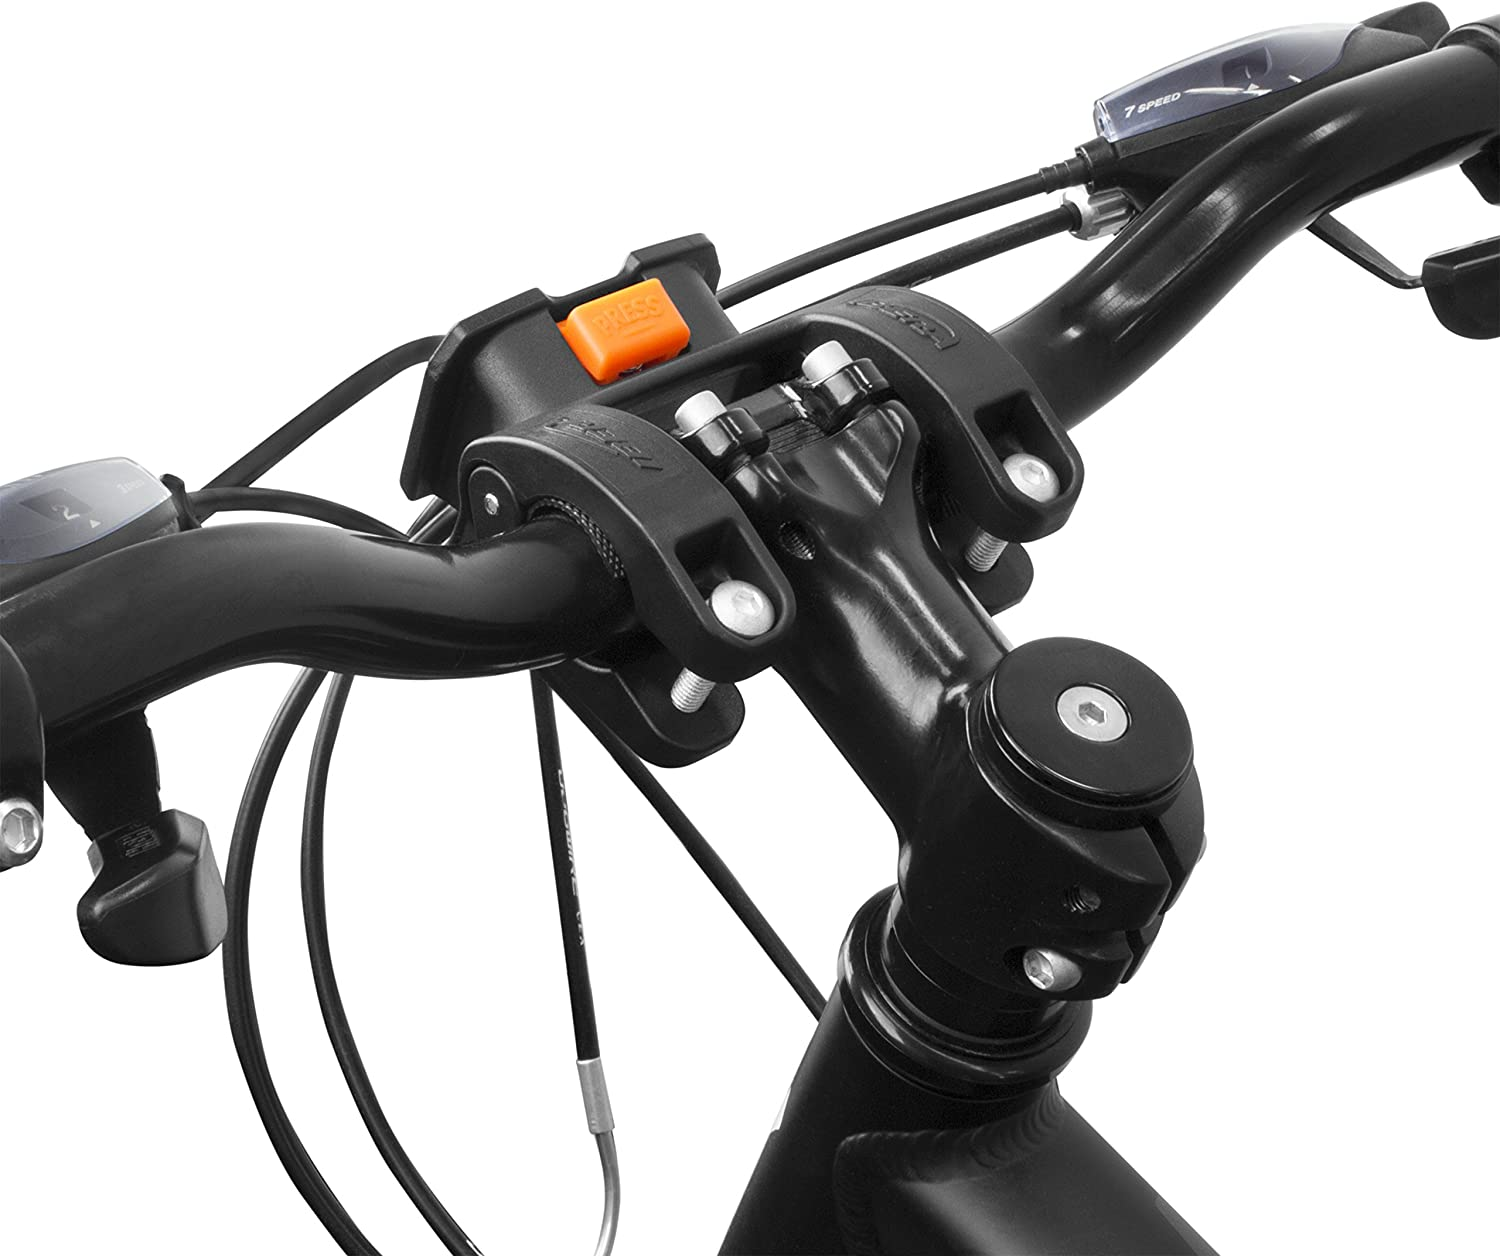 IBERAUSA Adjustable Handlebar Mount for Bike, Quick-Release, for IB-HB3, IB-HB4, IB-HB5 and IB-HB8 (IB-HB-Mount)